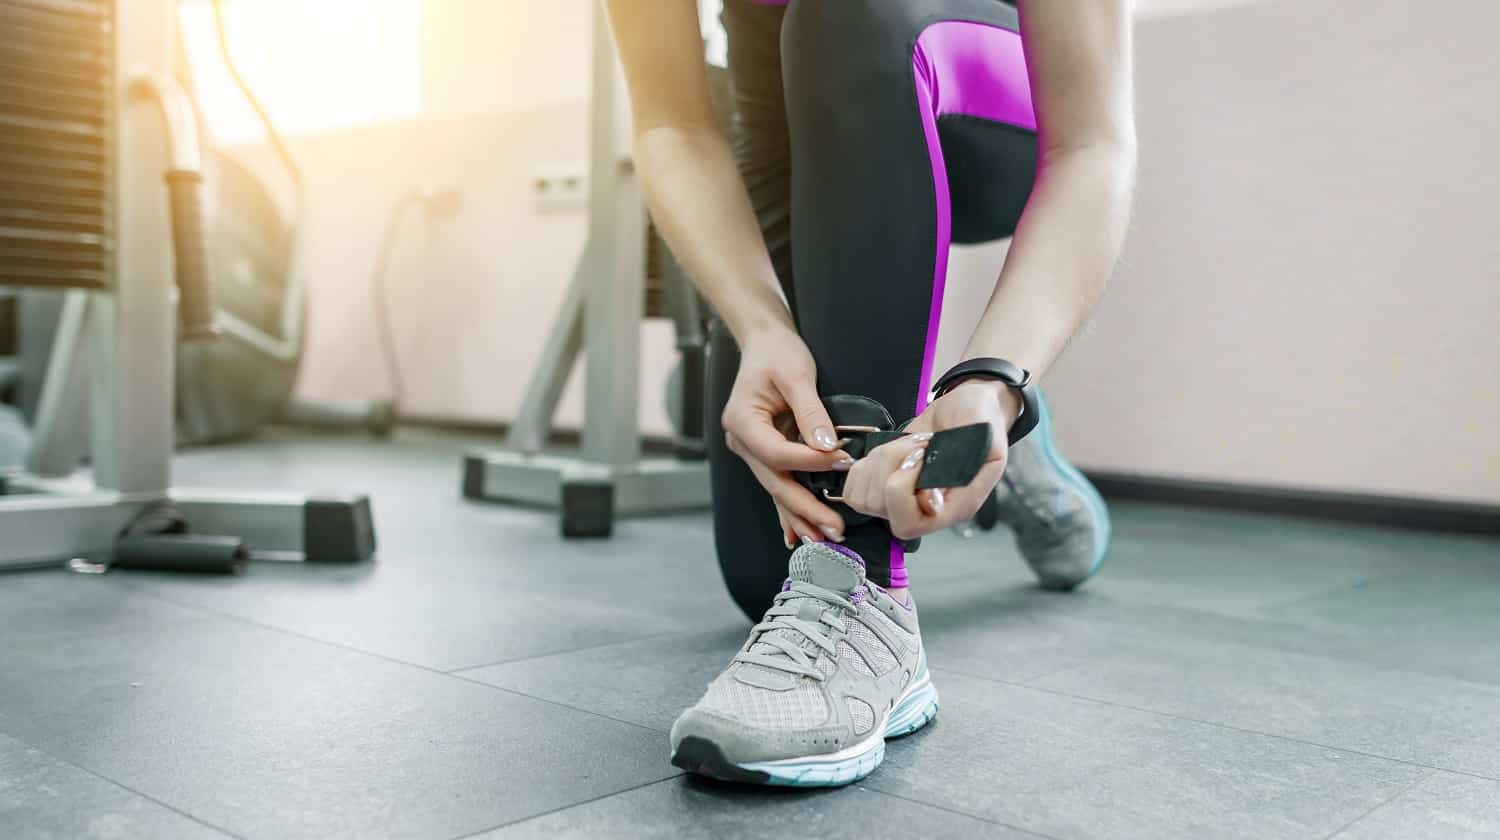 Young woman wearing leather ankle straps prepares to exercise on fitness machine in the gym. Fitness, sport, training, people concept